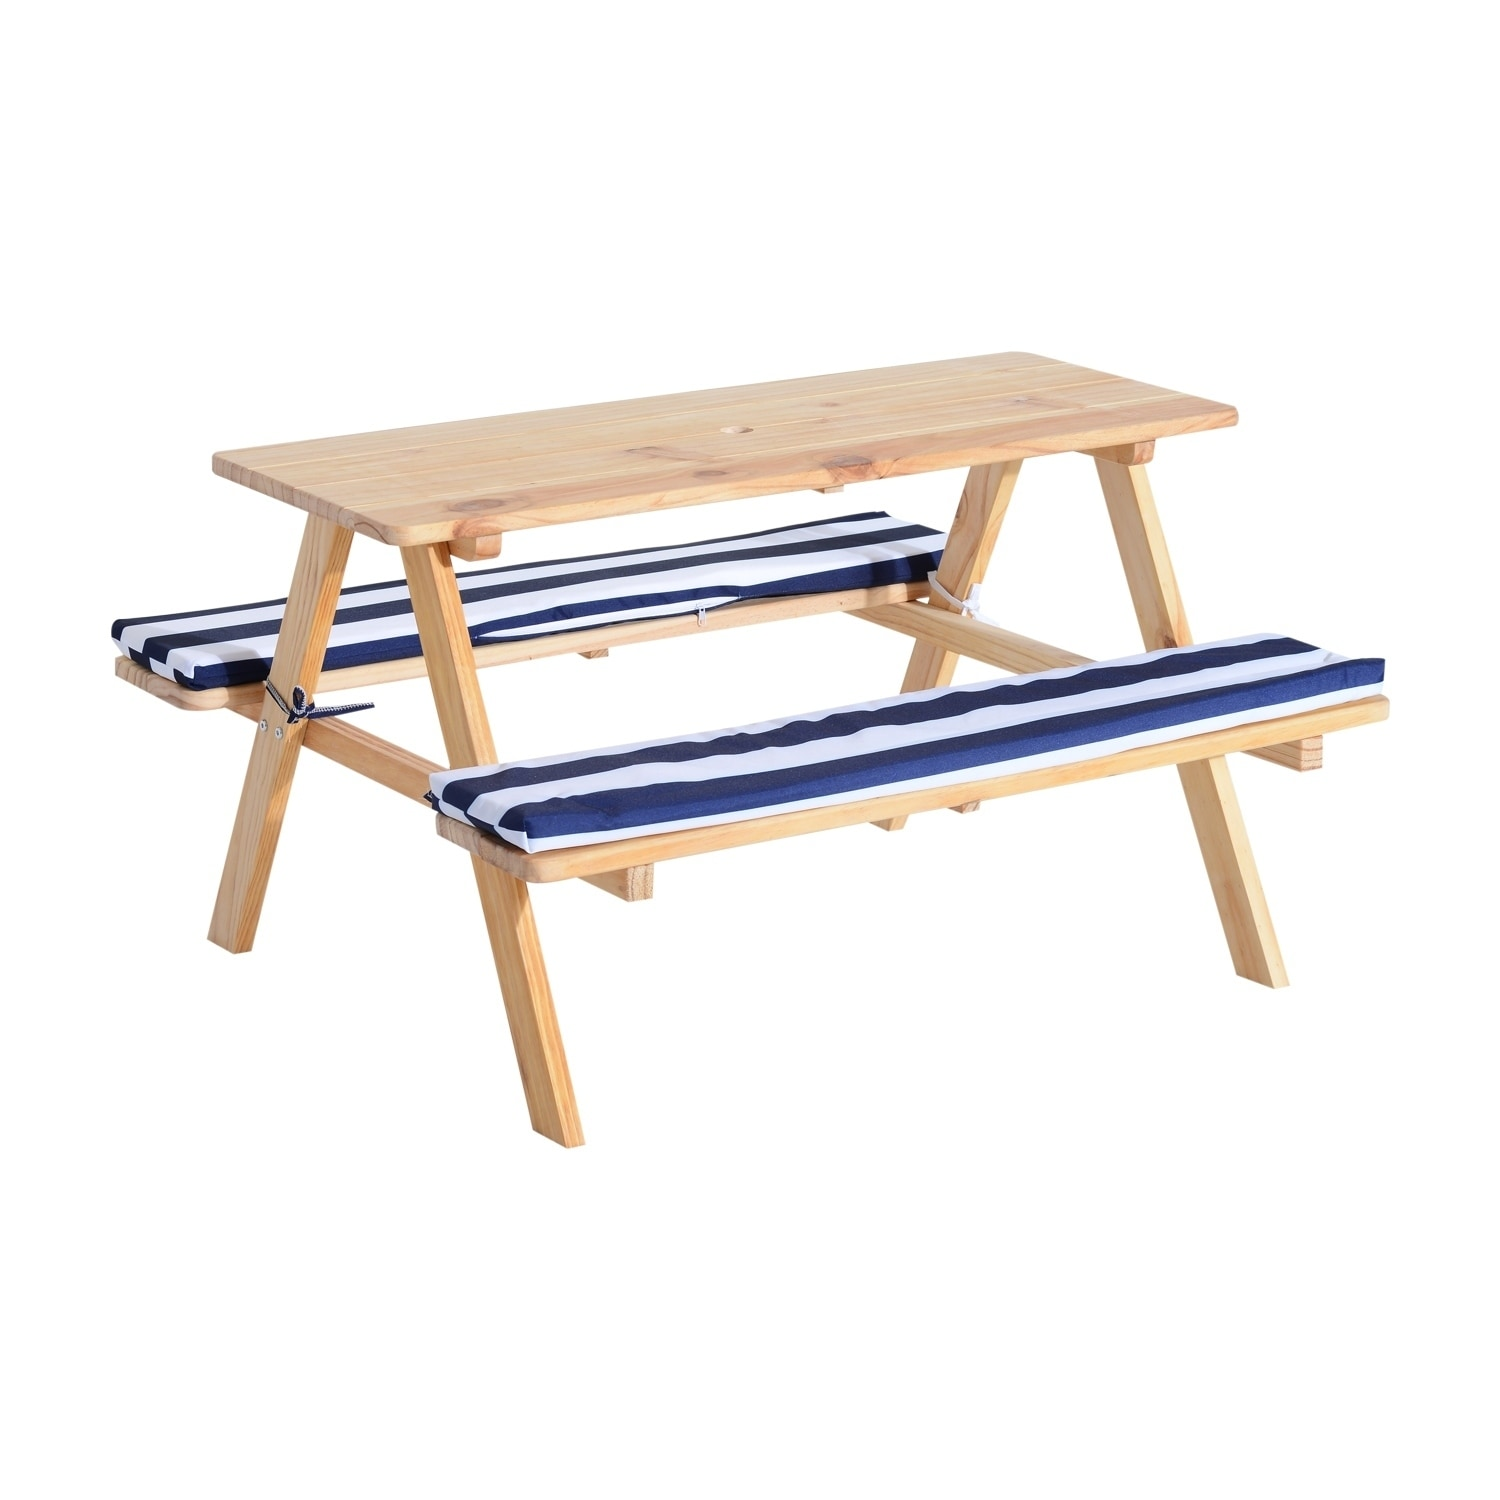 Aosom Qaba Wooden Outdoor Kids Picnic Table with Padded B...